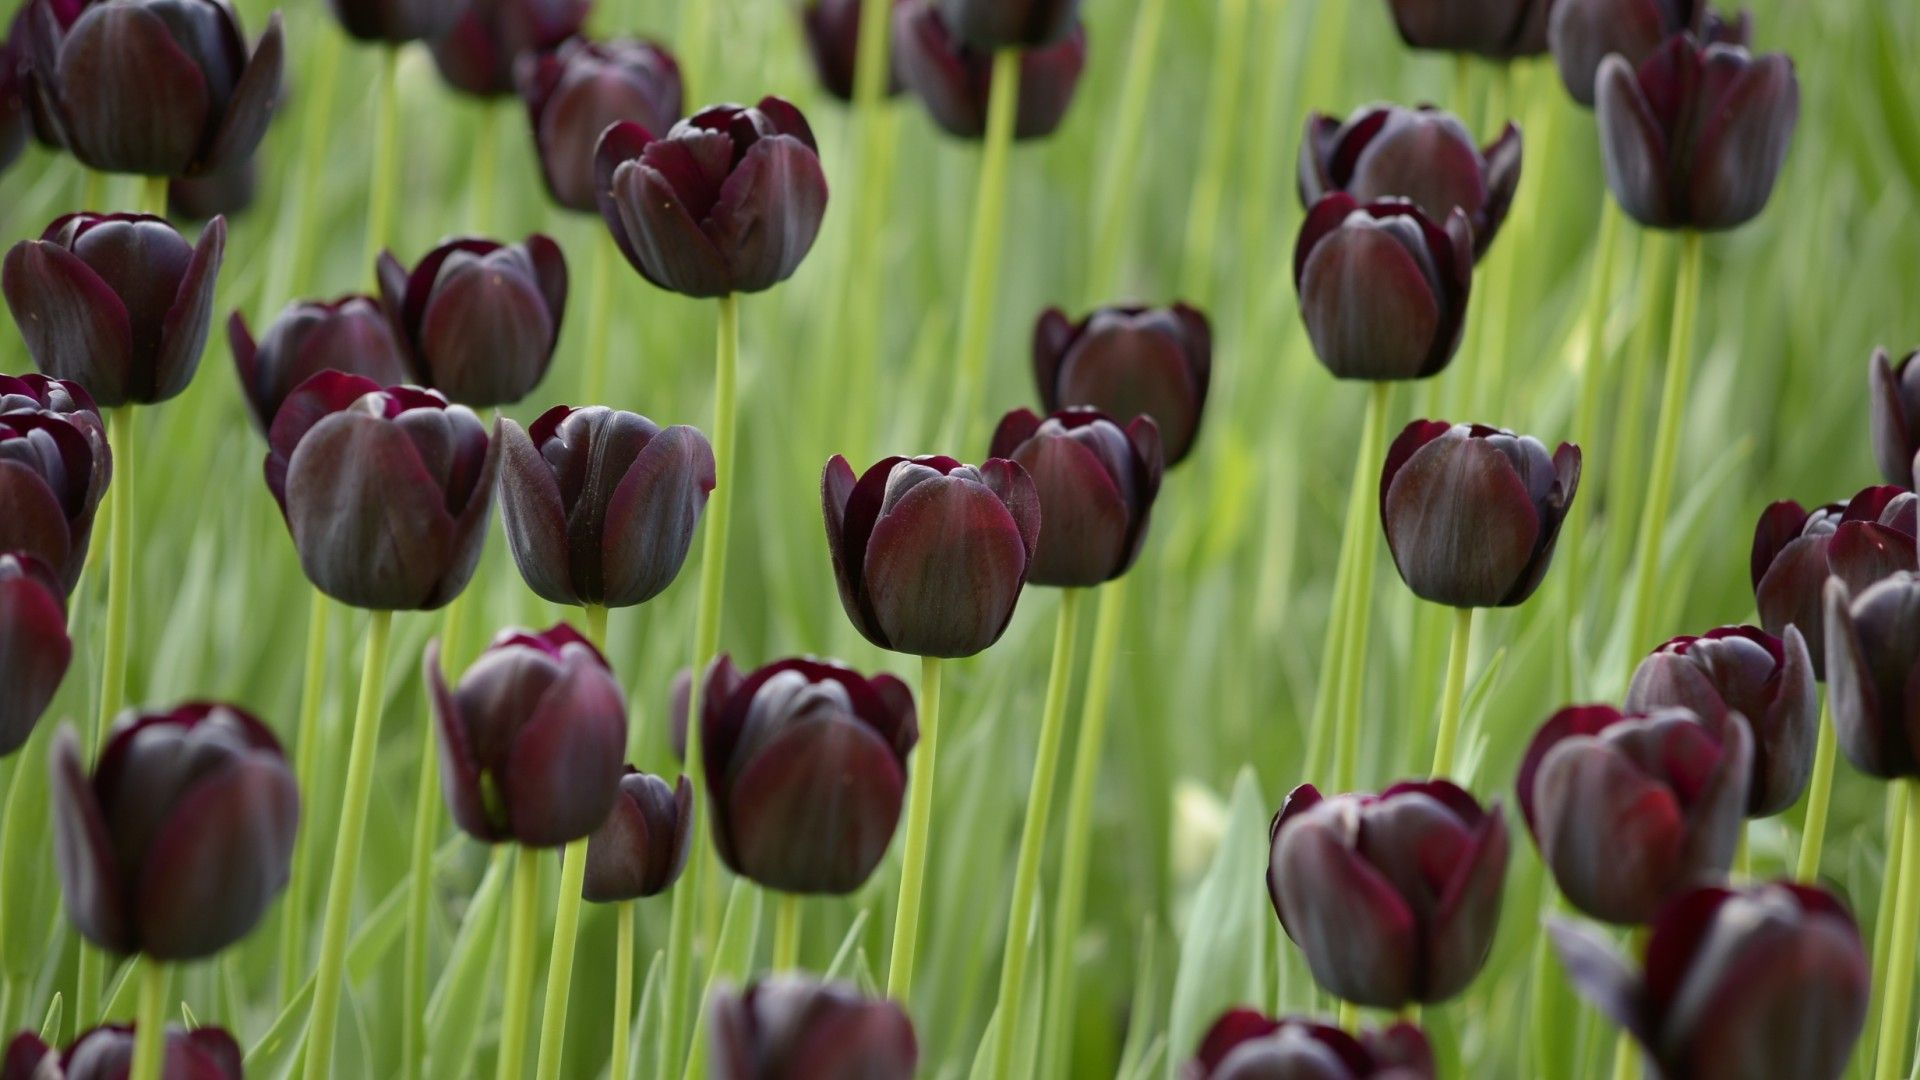 Black Tulip: means mistery. Black colour is strength, seriousness, elegance, prestige, power, and authority. // Tulipán Negro: significa misterio. El color negro es la fuerza, seriedad, elegancia, prestigio, poder y autoridad.